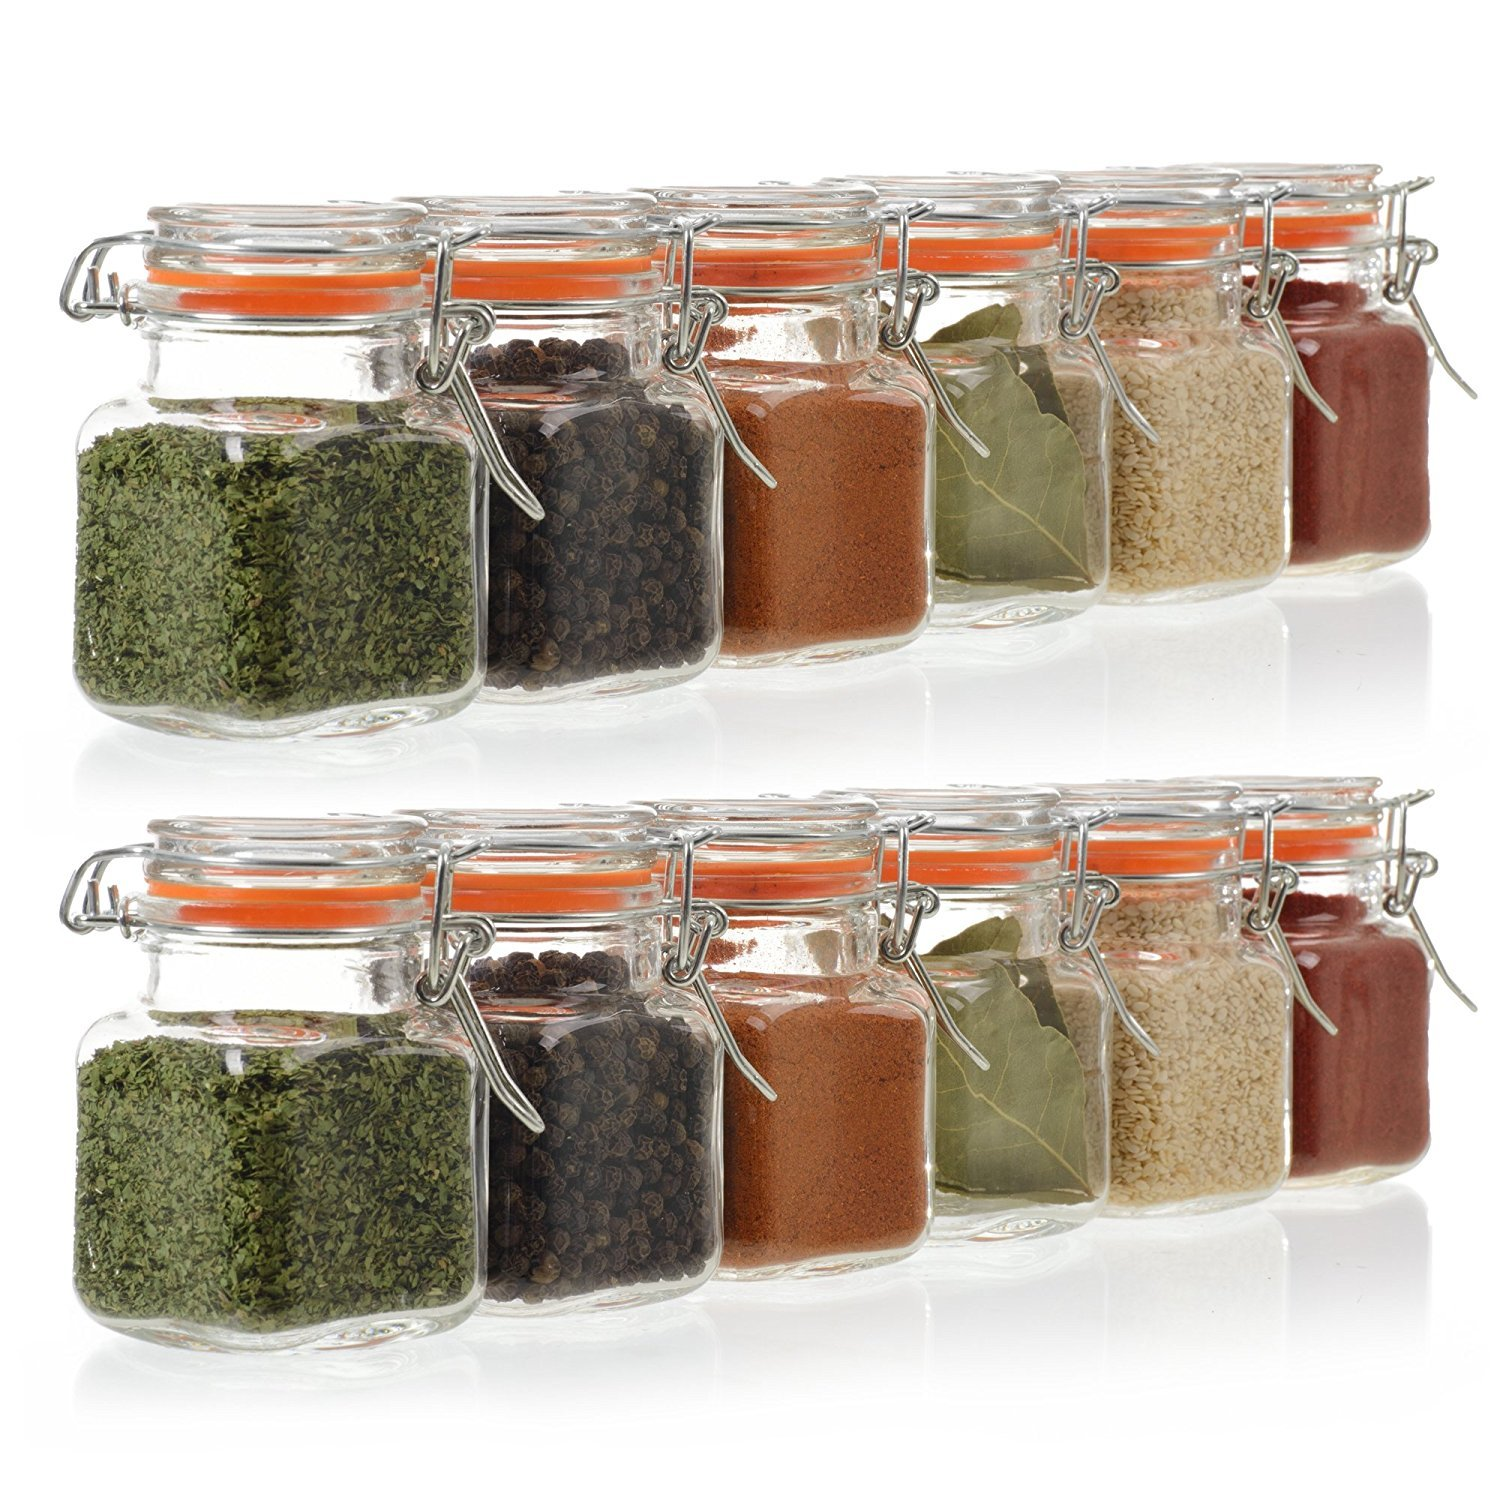 24 Pack – 3.4 Ounce Mini Square Glass Spice Jars Now $22.95!